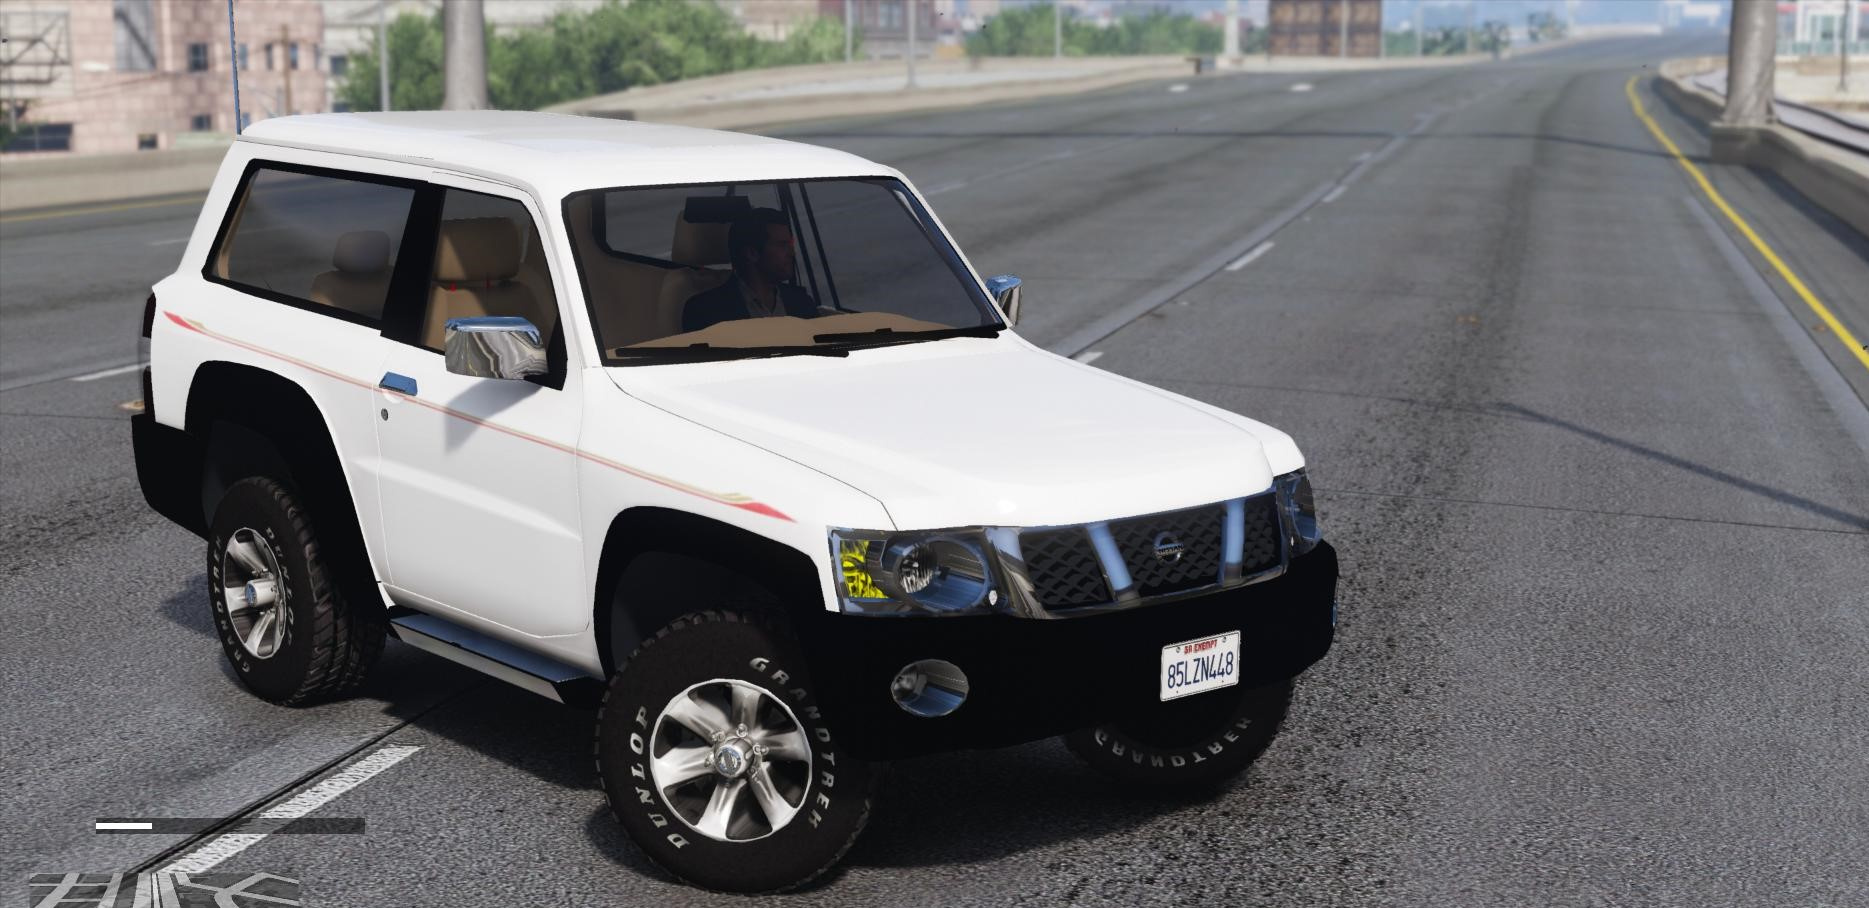 Nissan Patrol GL VTC 4800 Y61 2016 2-door [Add-On | Replace | Livery